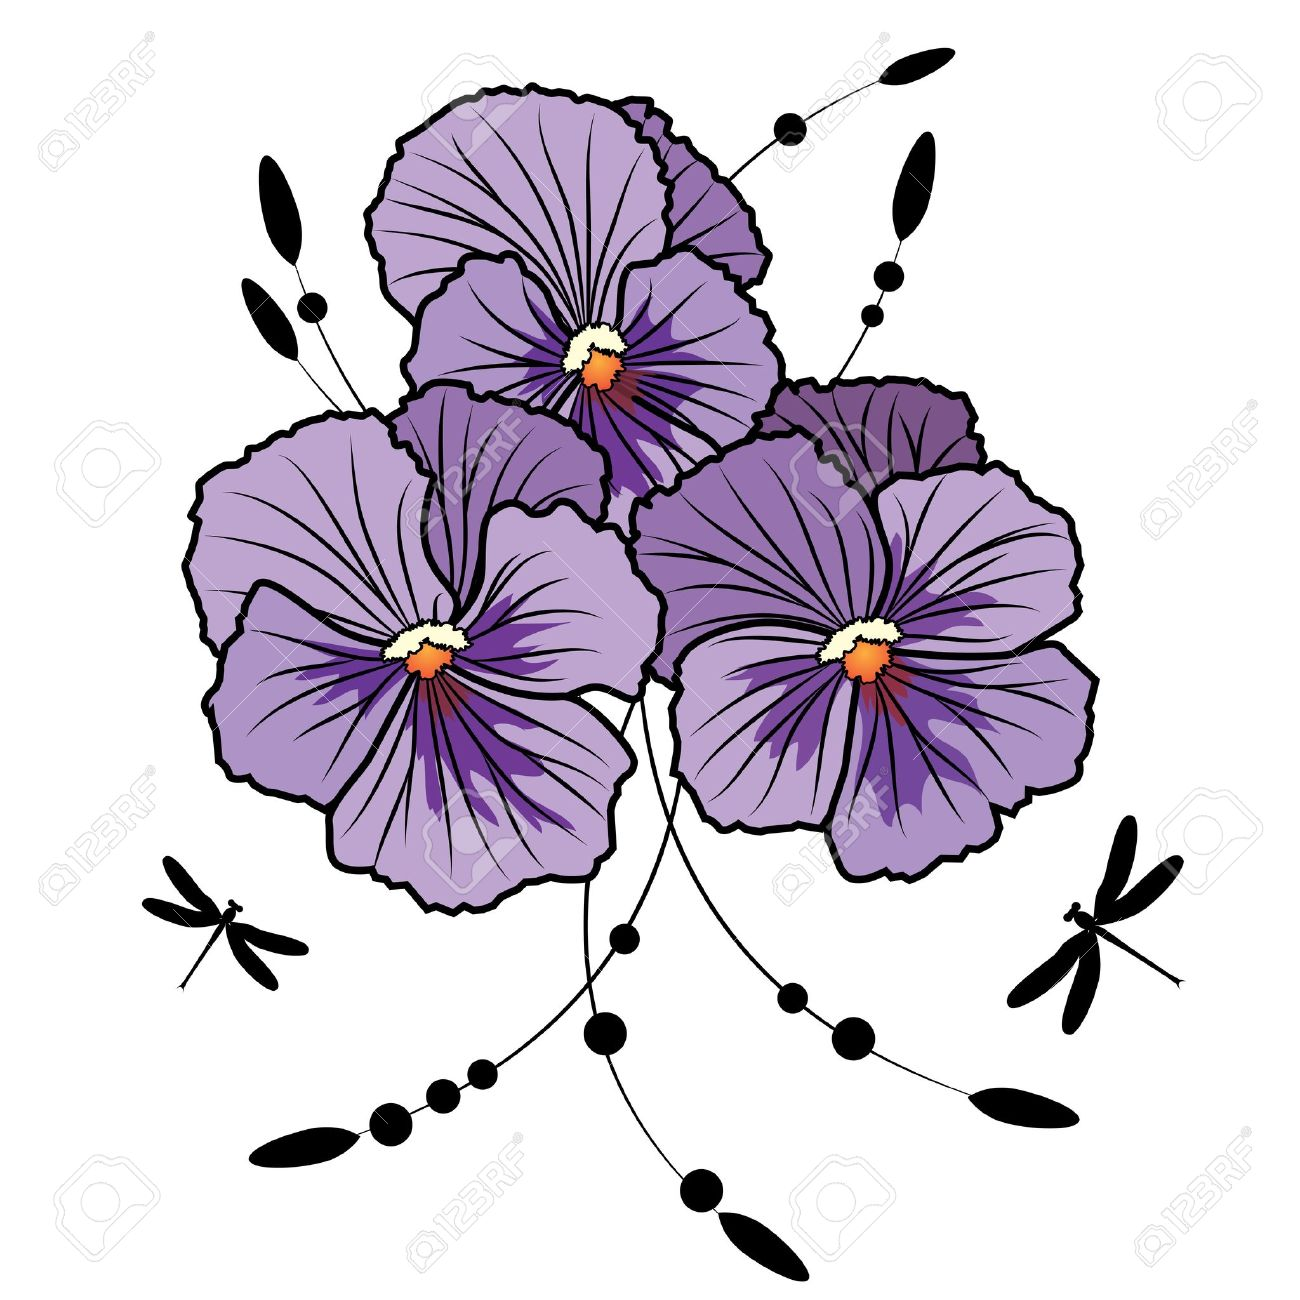 Vector Illustration Of Flowers Of Violet Pansies And Dragonflies Royalty Free Cliparts Vectors And Stock Illustration Image 12860304